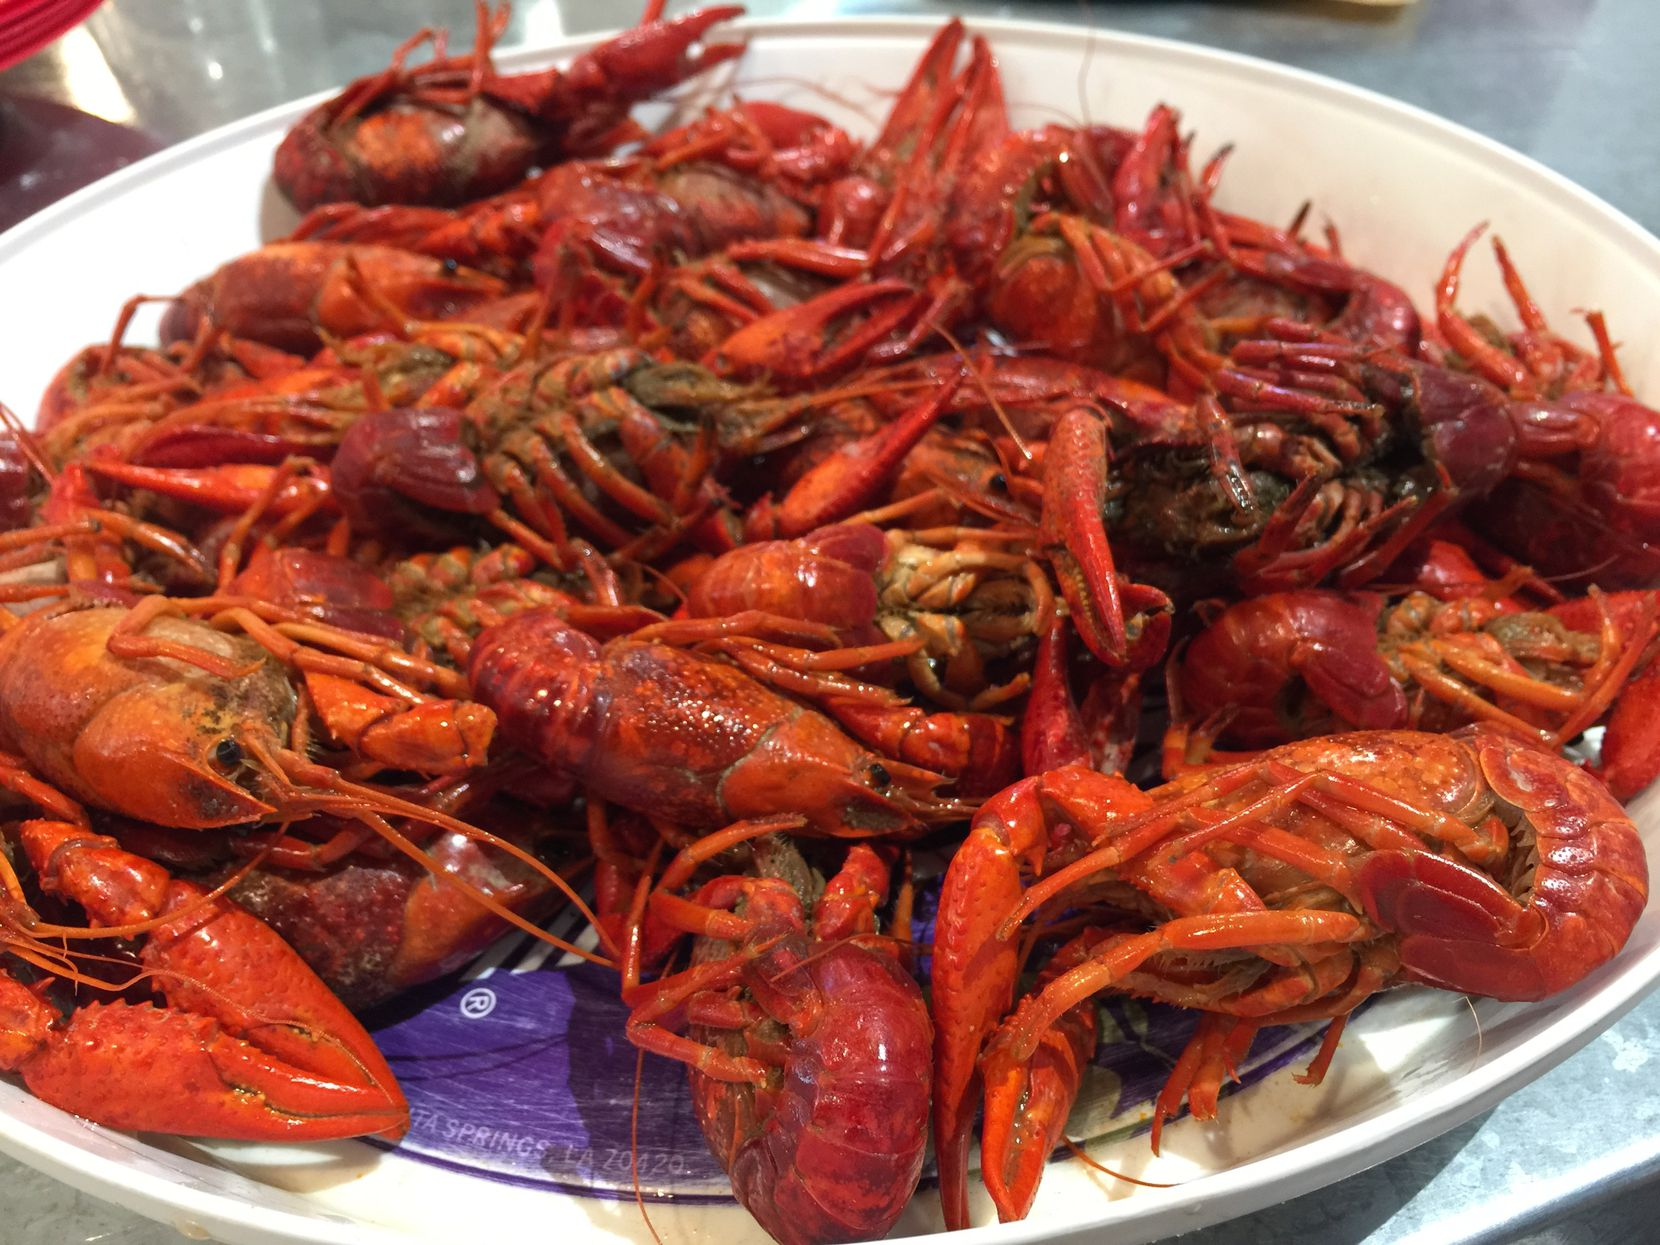 A 2-pound platter of boiled crawfish at Cajun Tailgators